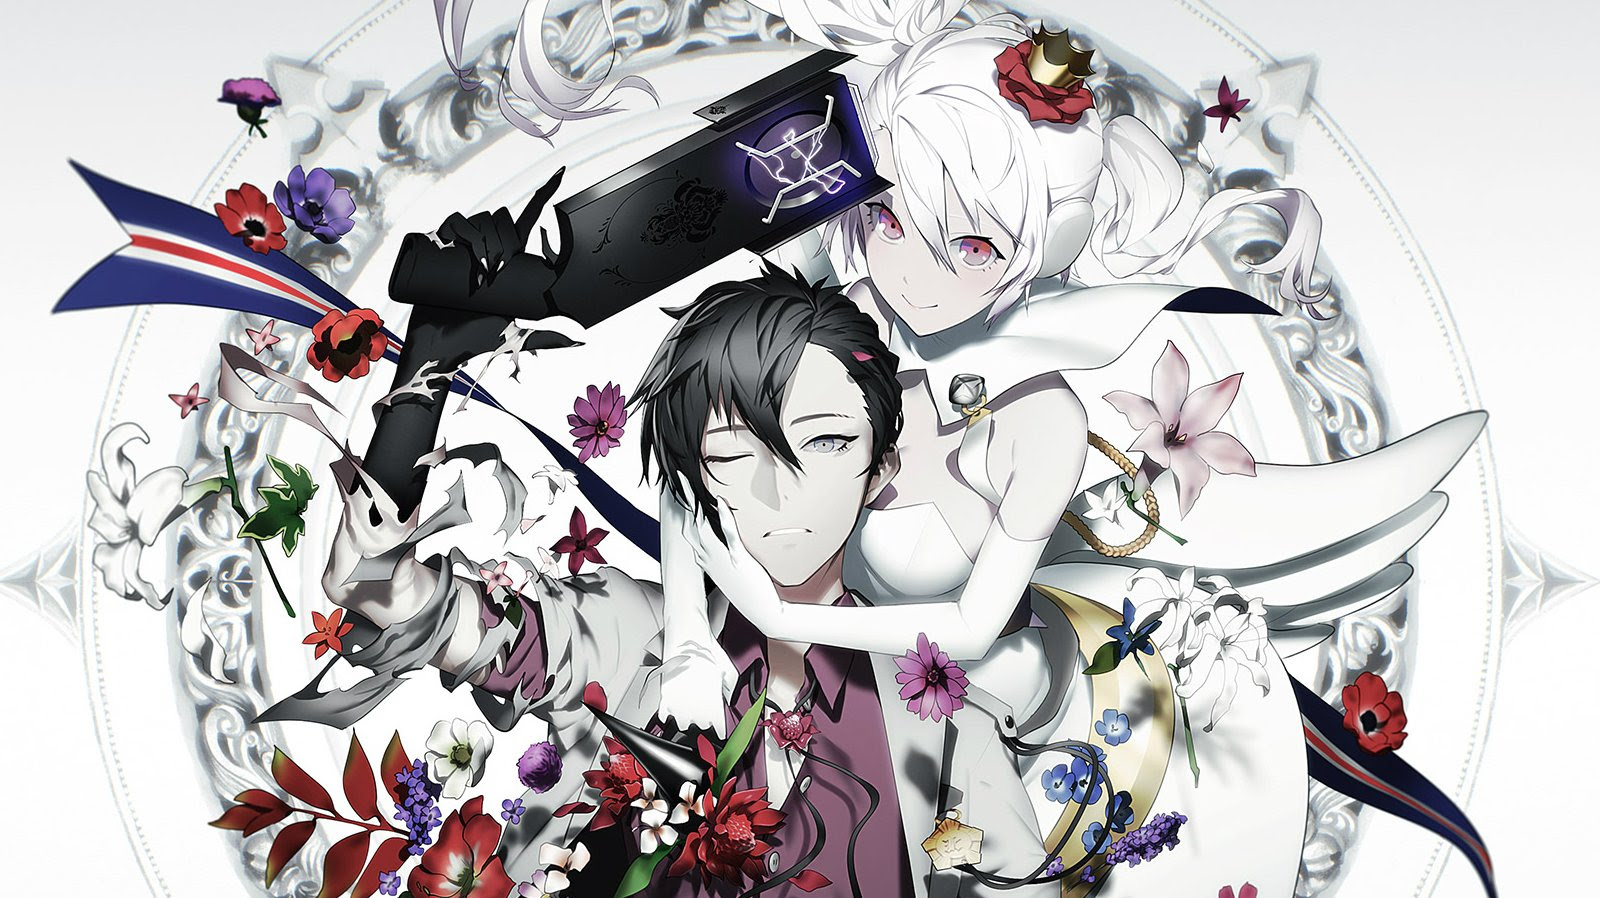 Review: The Caligula Effect screenshot